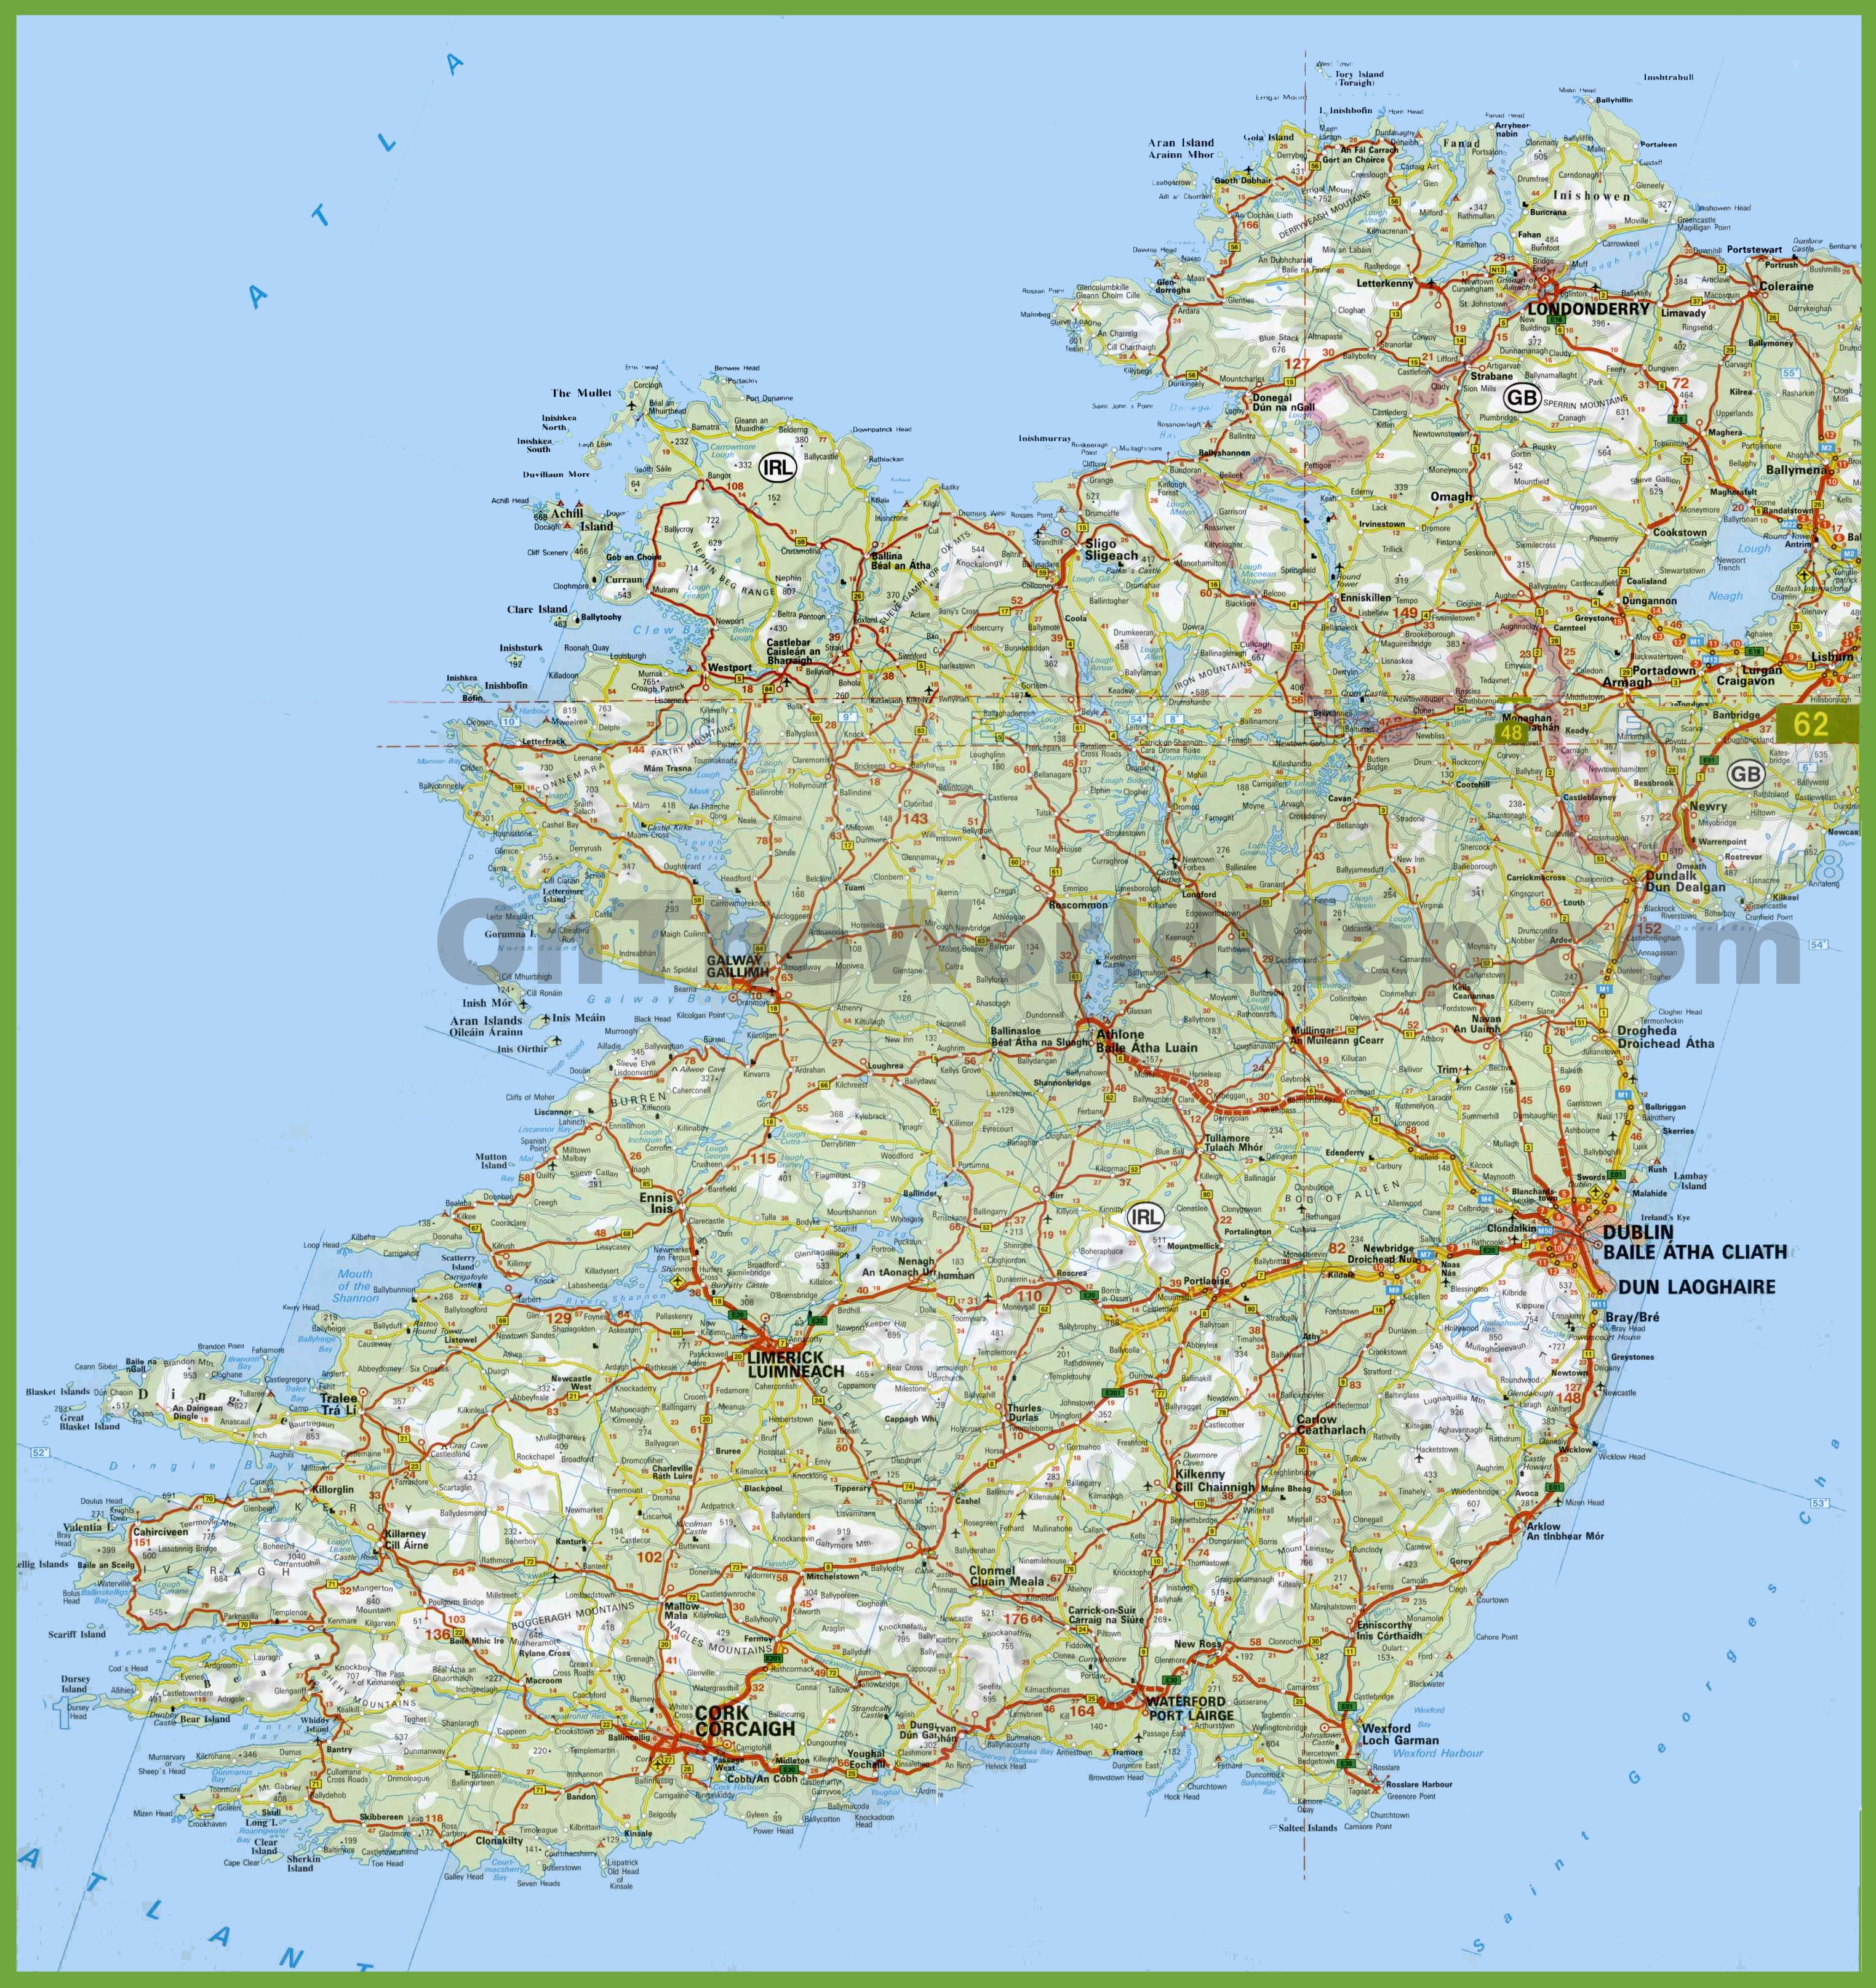 Large Detailed Map Of Ireland With Cities And Towns - Printable Map Of Ireland